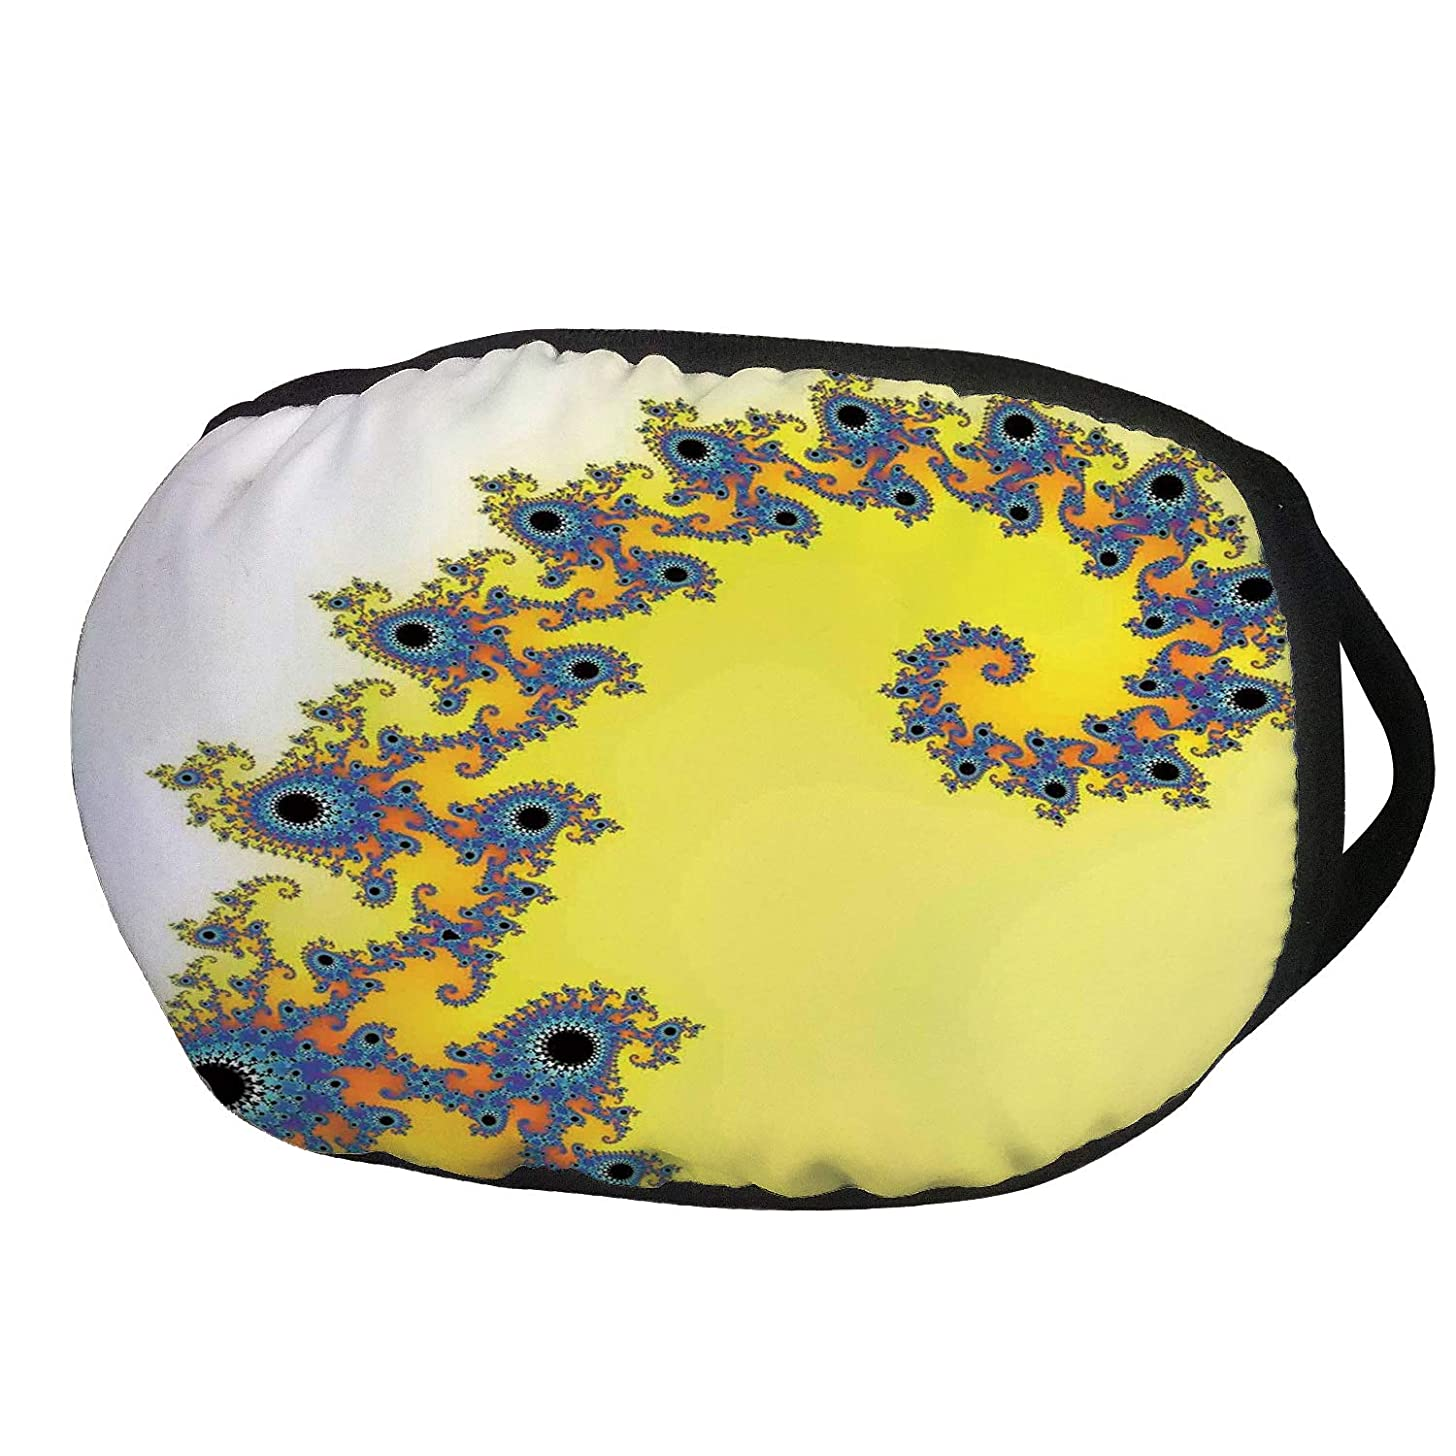 Fashion Cotton Antidust Face Mouth Mask,Fractal,Trippy Seahorse Pattern with Vortex Turning Swirled Petals Fantasy New Image,Earth Yellow Blue,for women & men